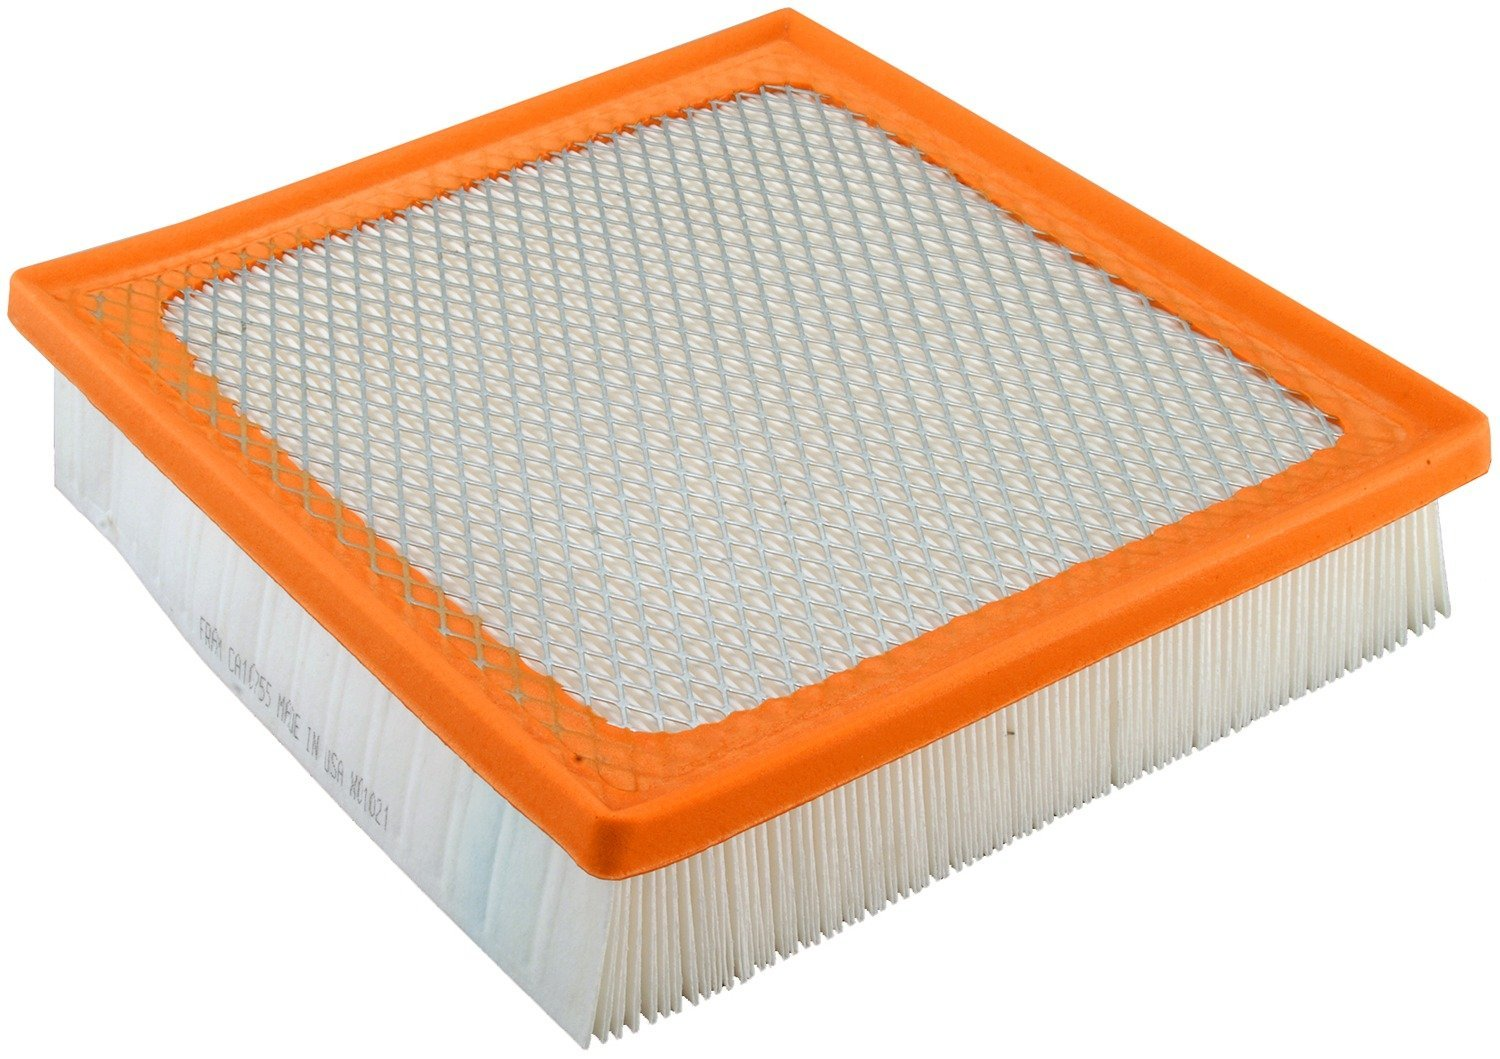 hyundai air filter replacement for Hyundai?Elantra, Sonata, Santa Fe, Tucson, and Veloster.